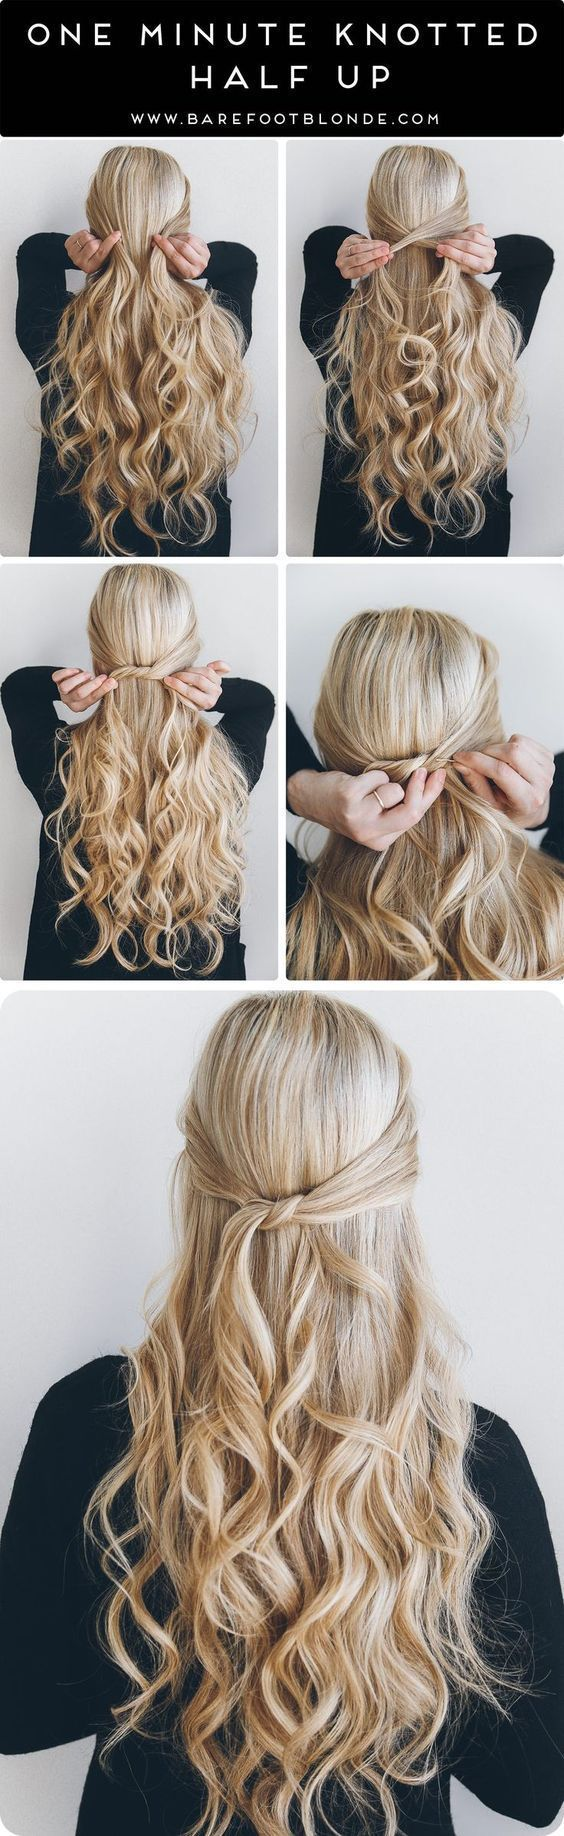 hair style best 25 popular hairstyles ideas on popular 8923